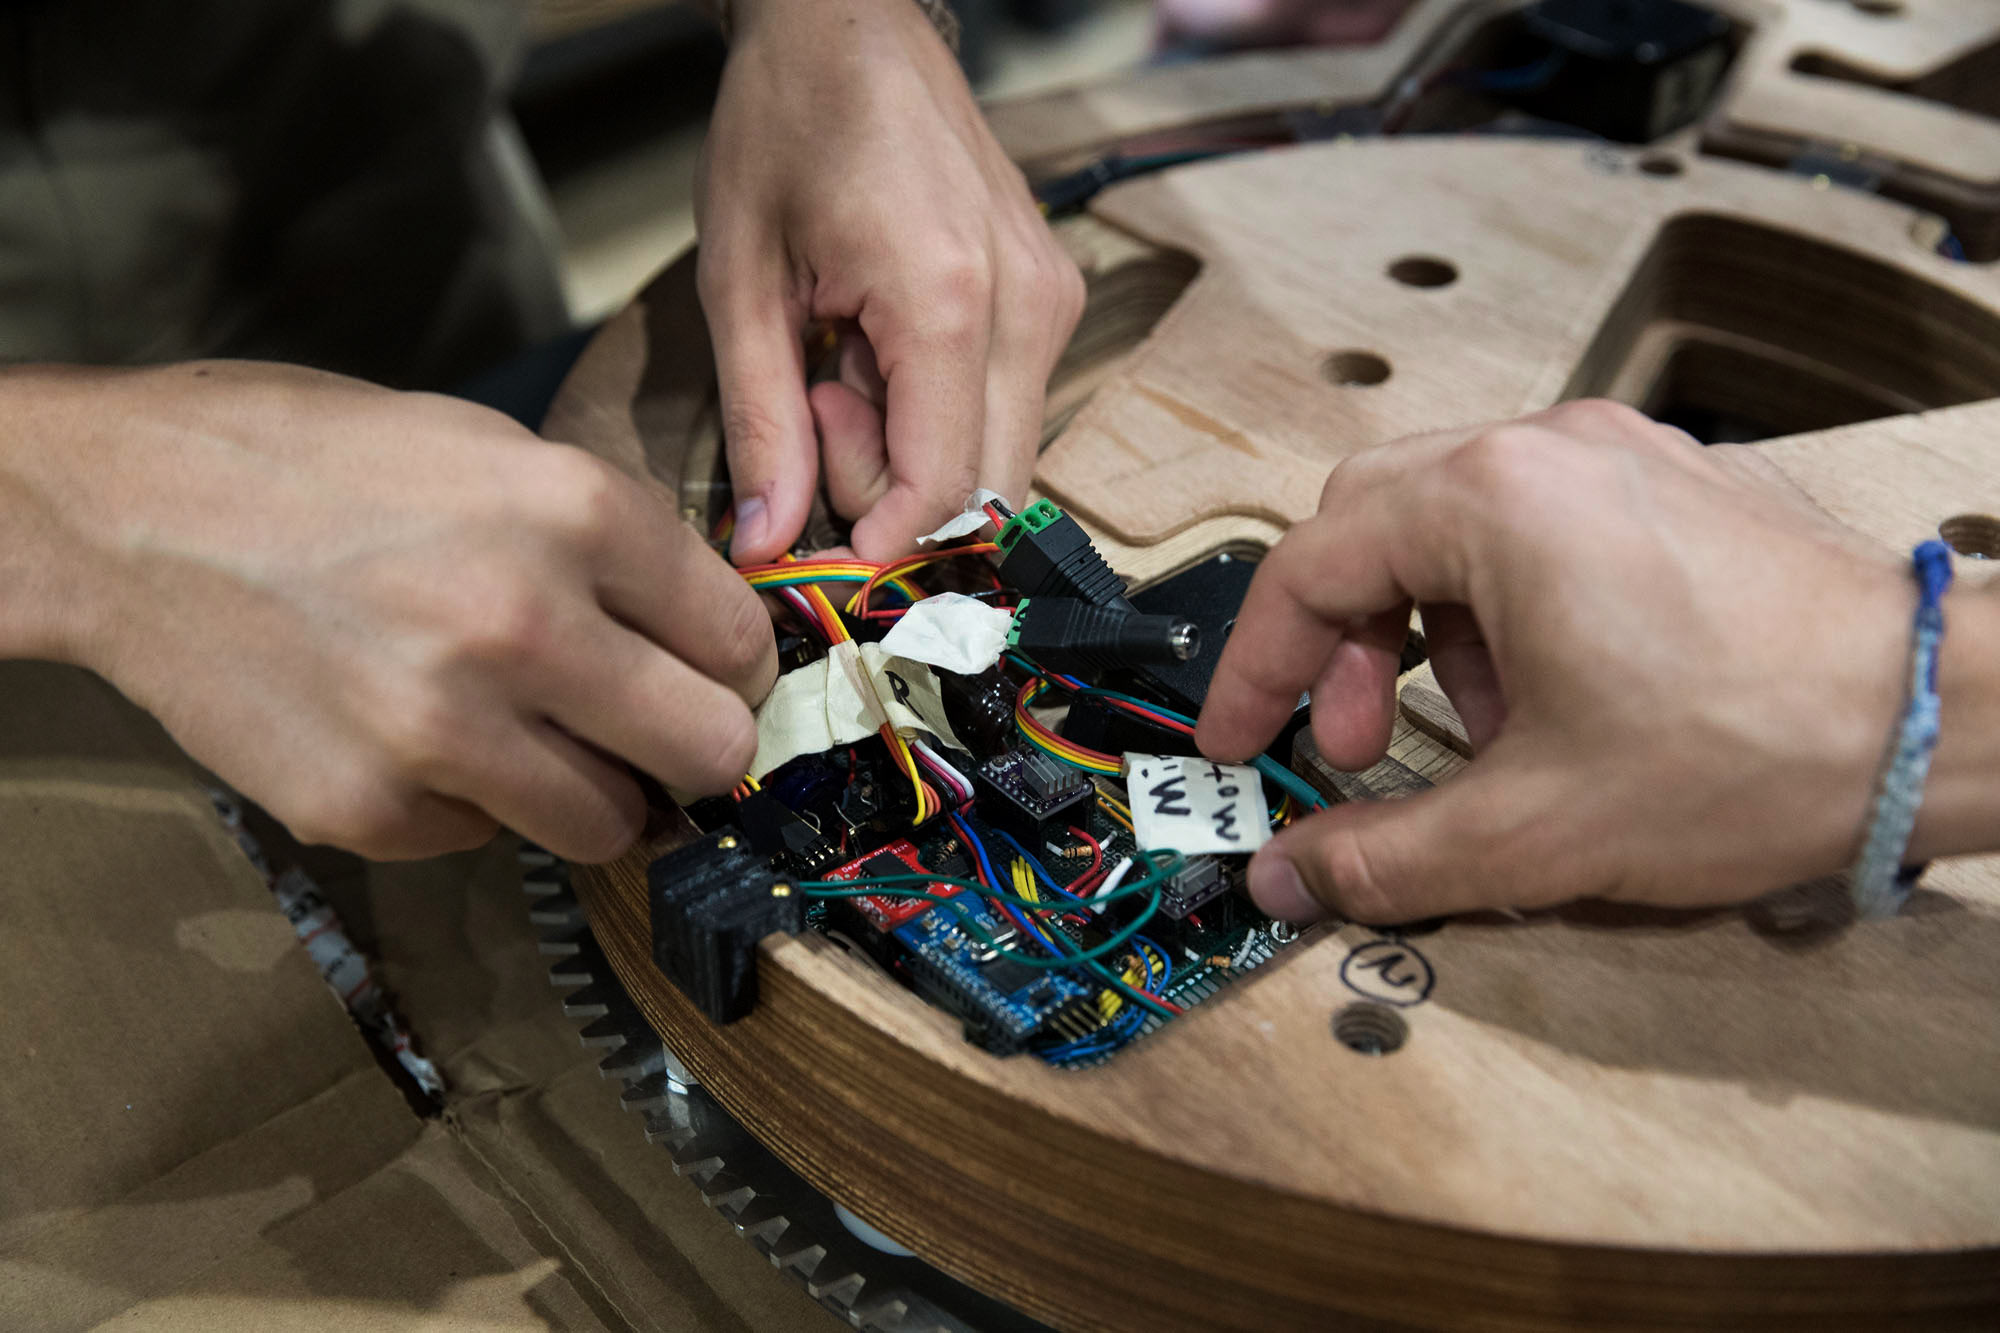 Hands placing electronics in the back of an unfinished wooden clock